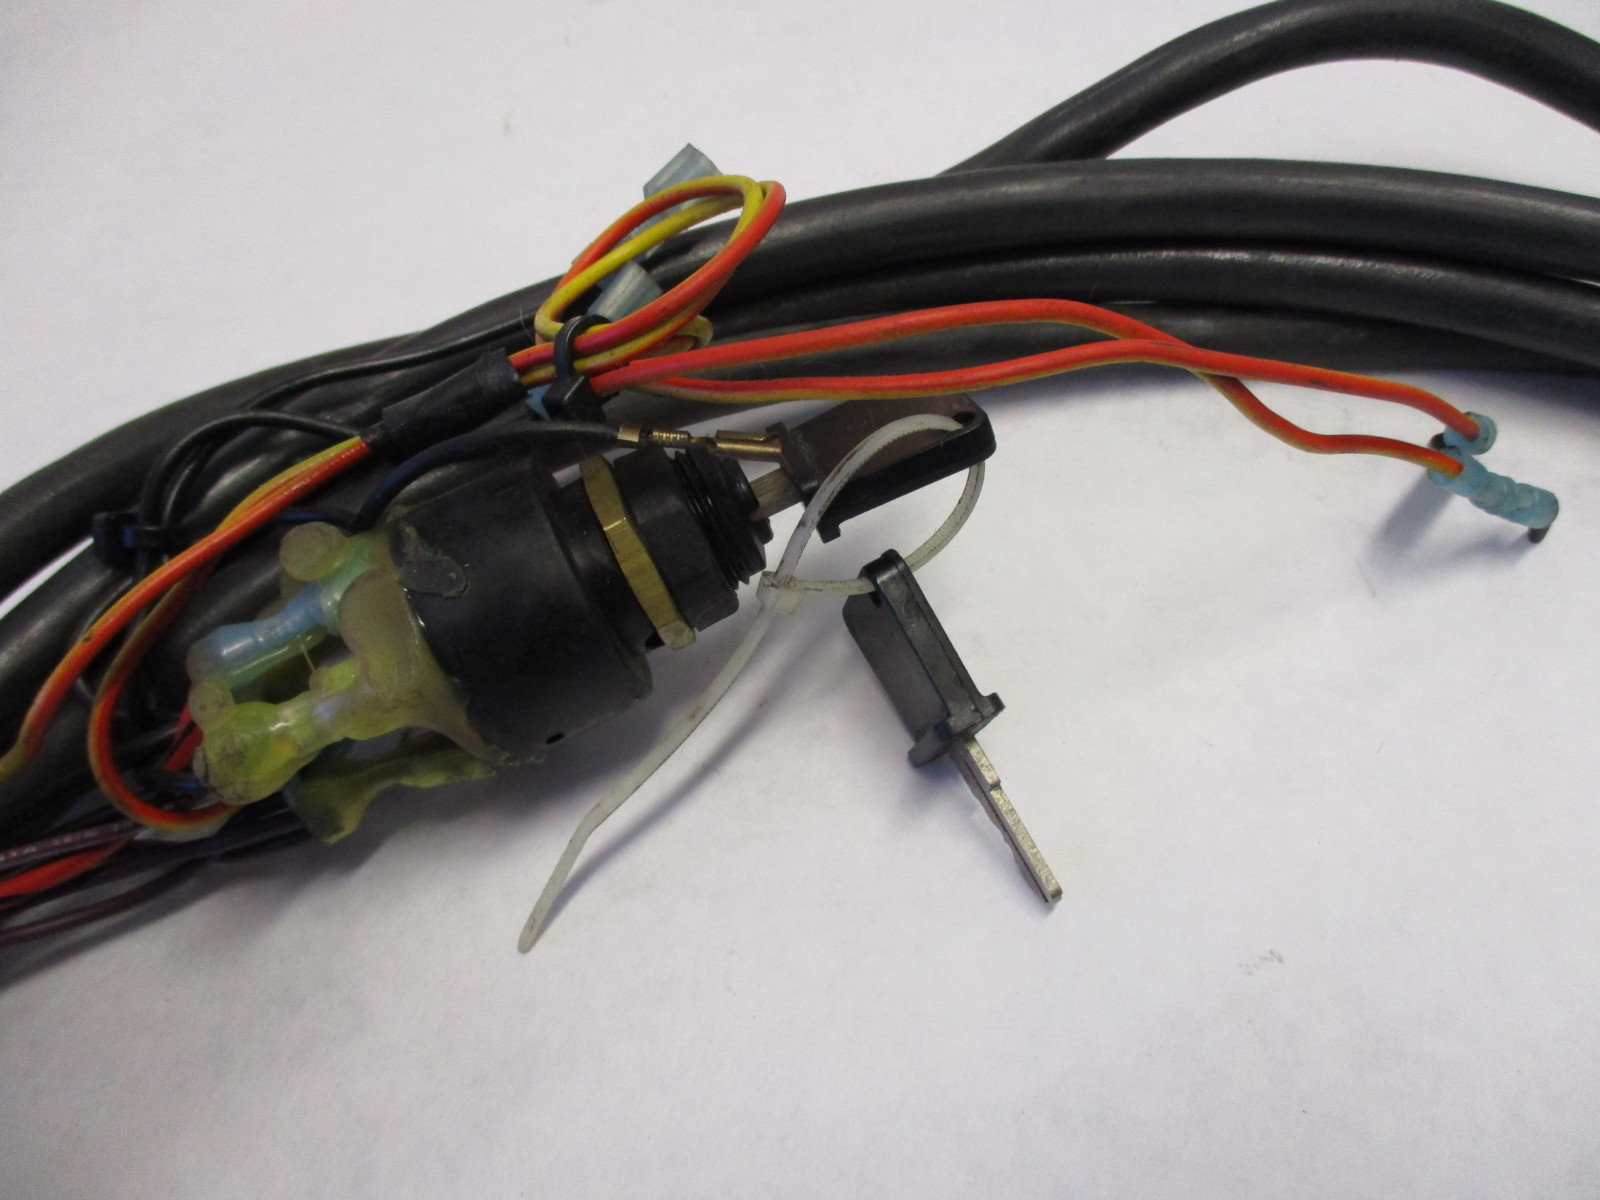 omc evinrude johnson 18 ft engine to dash key switch w key wire harness to motor